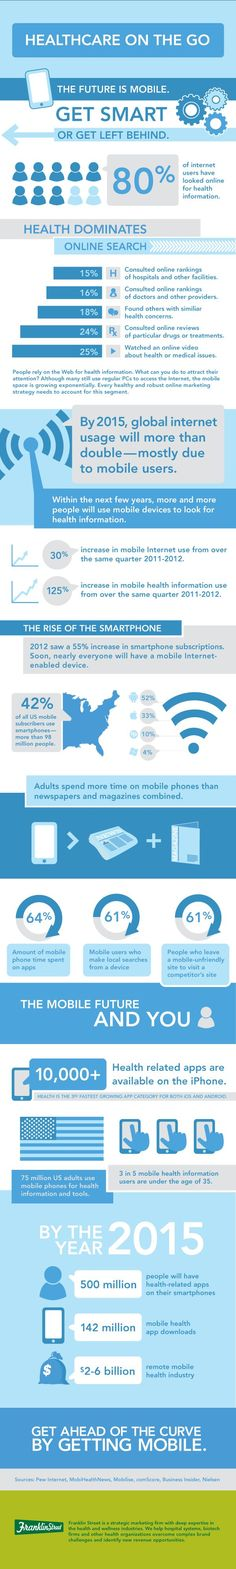 ignore health mobile marketing  If you do, you'll miss out.    By Jessica Levco | Posted: November 15, 2012